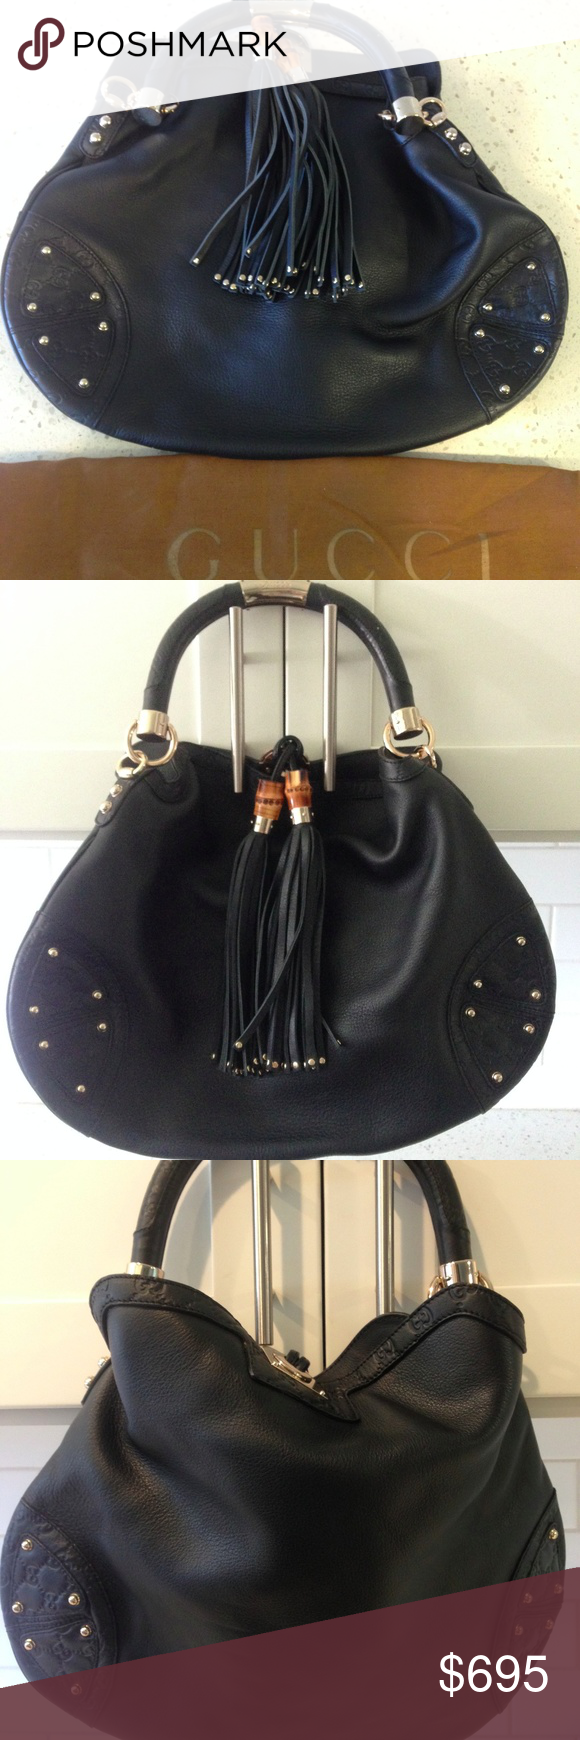 0b75d54a90dcb0 Gucci Babouska Indy Bamboo Tassel Hobo Bag Black L Crafted in monogram  embossed black leather, it features black leather tassels with metal bamboo  beads, ...